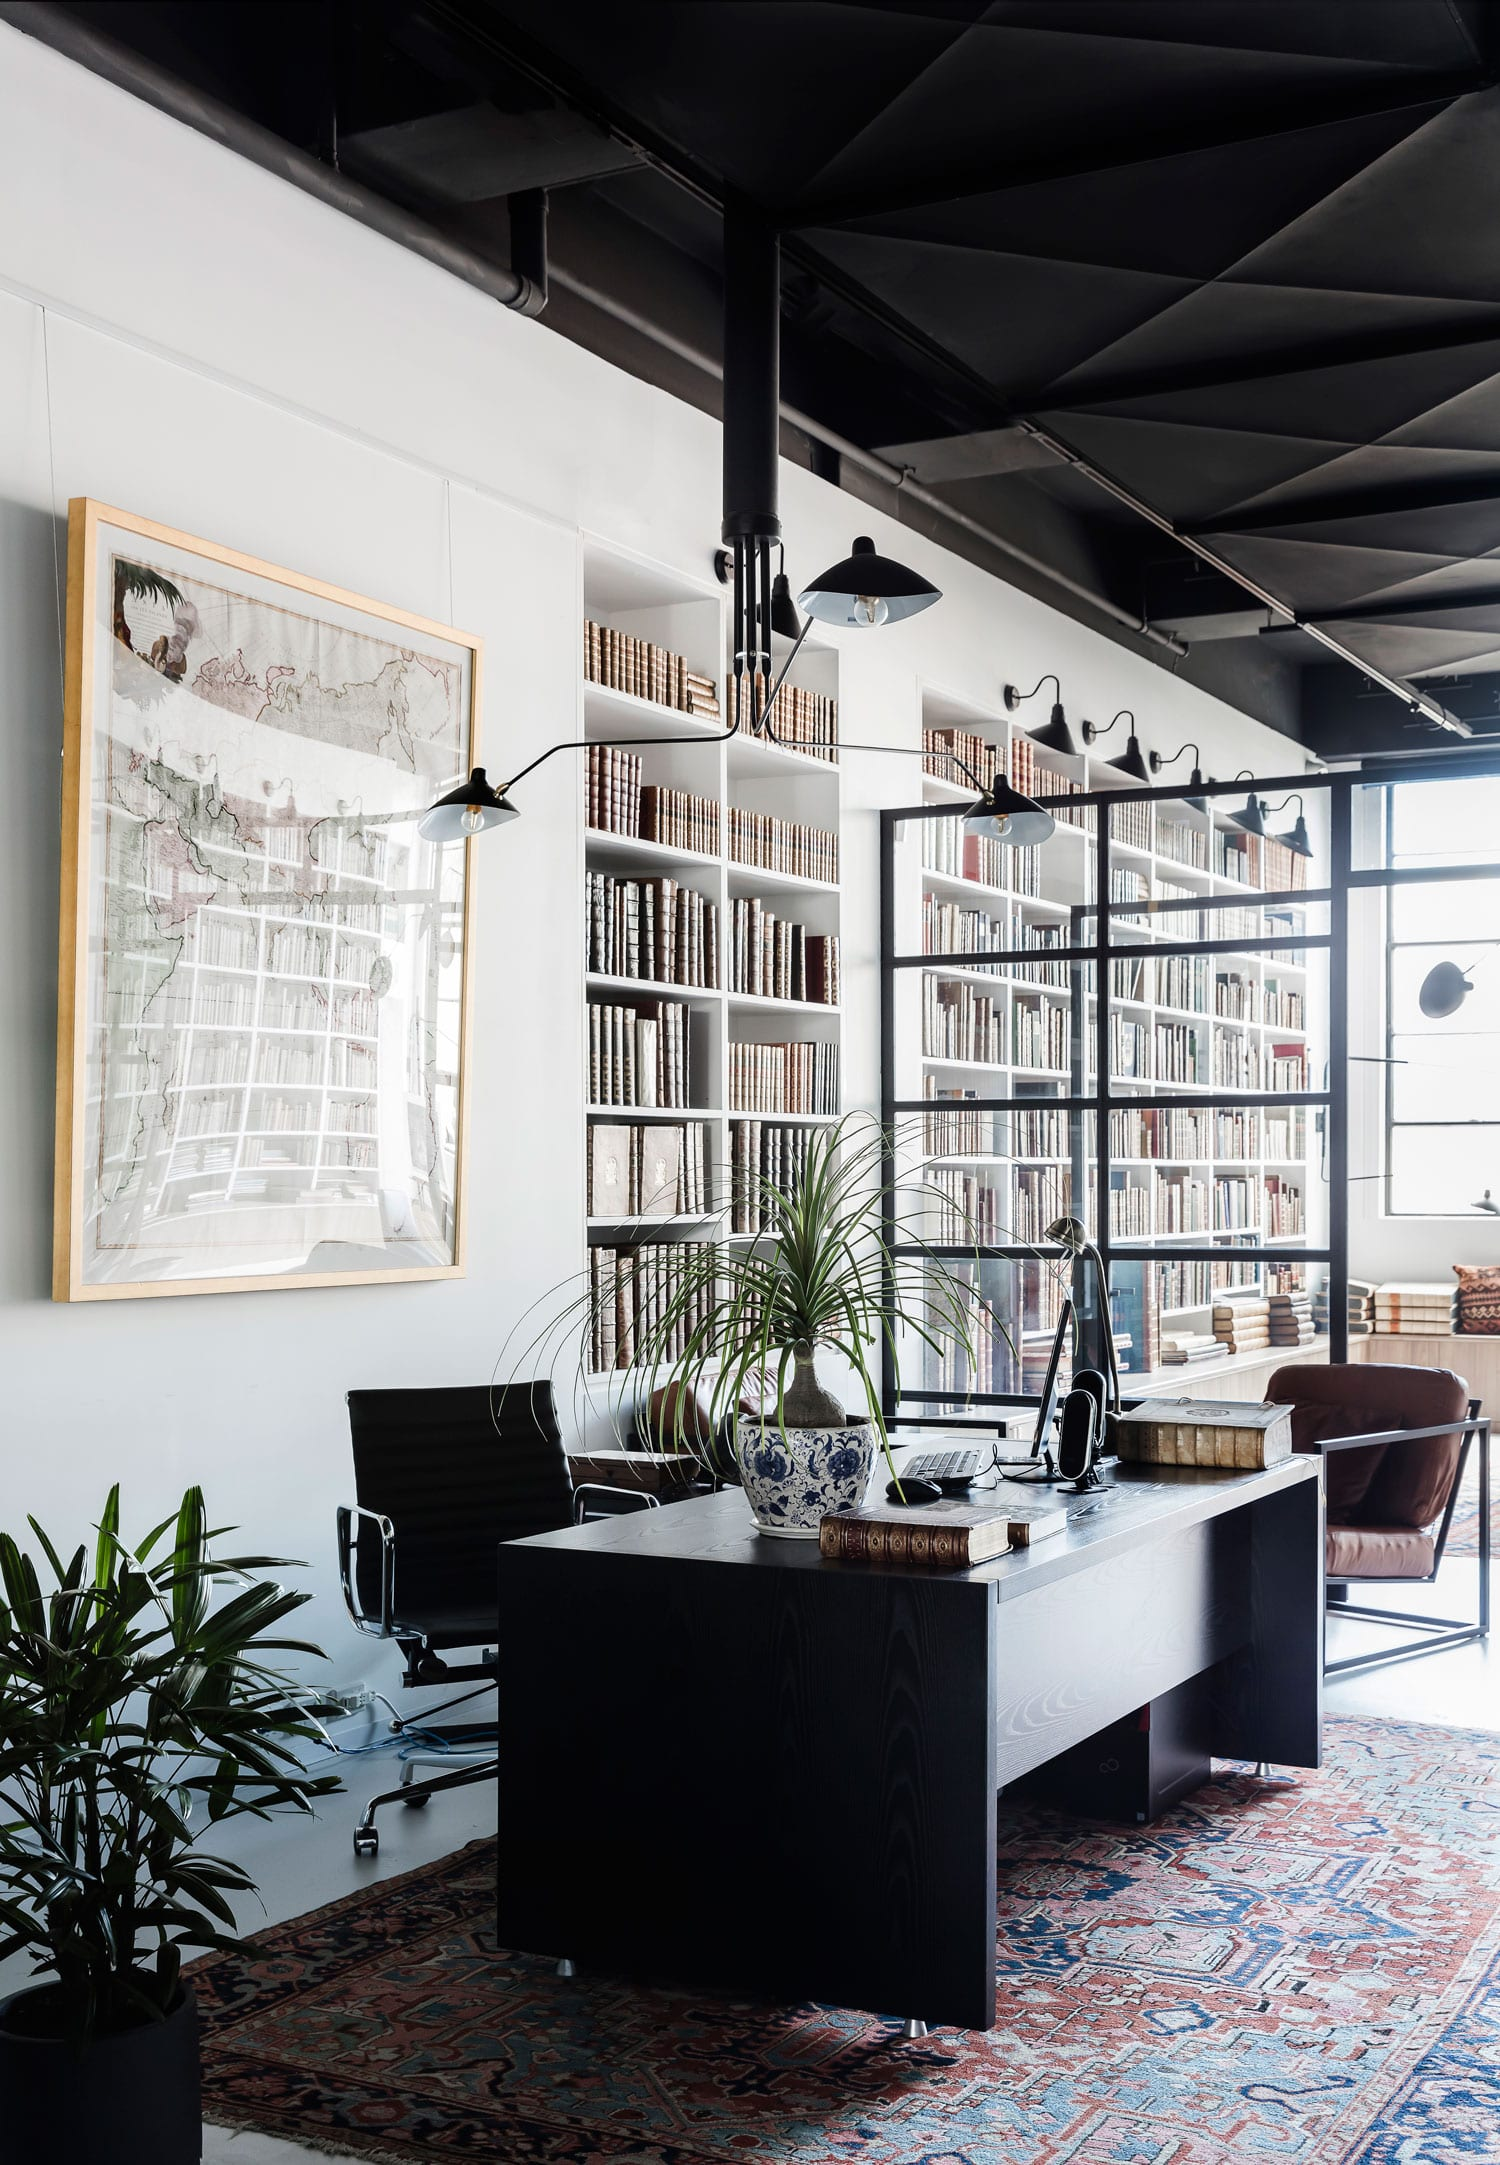 Rare Bookseller's Office Space in Surry Hills by Busatti Studio   Yellowtrace